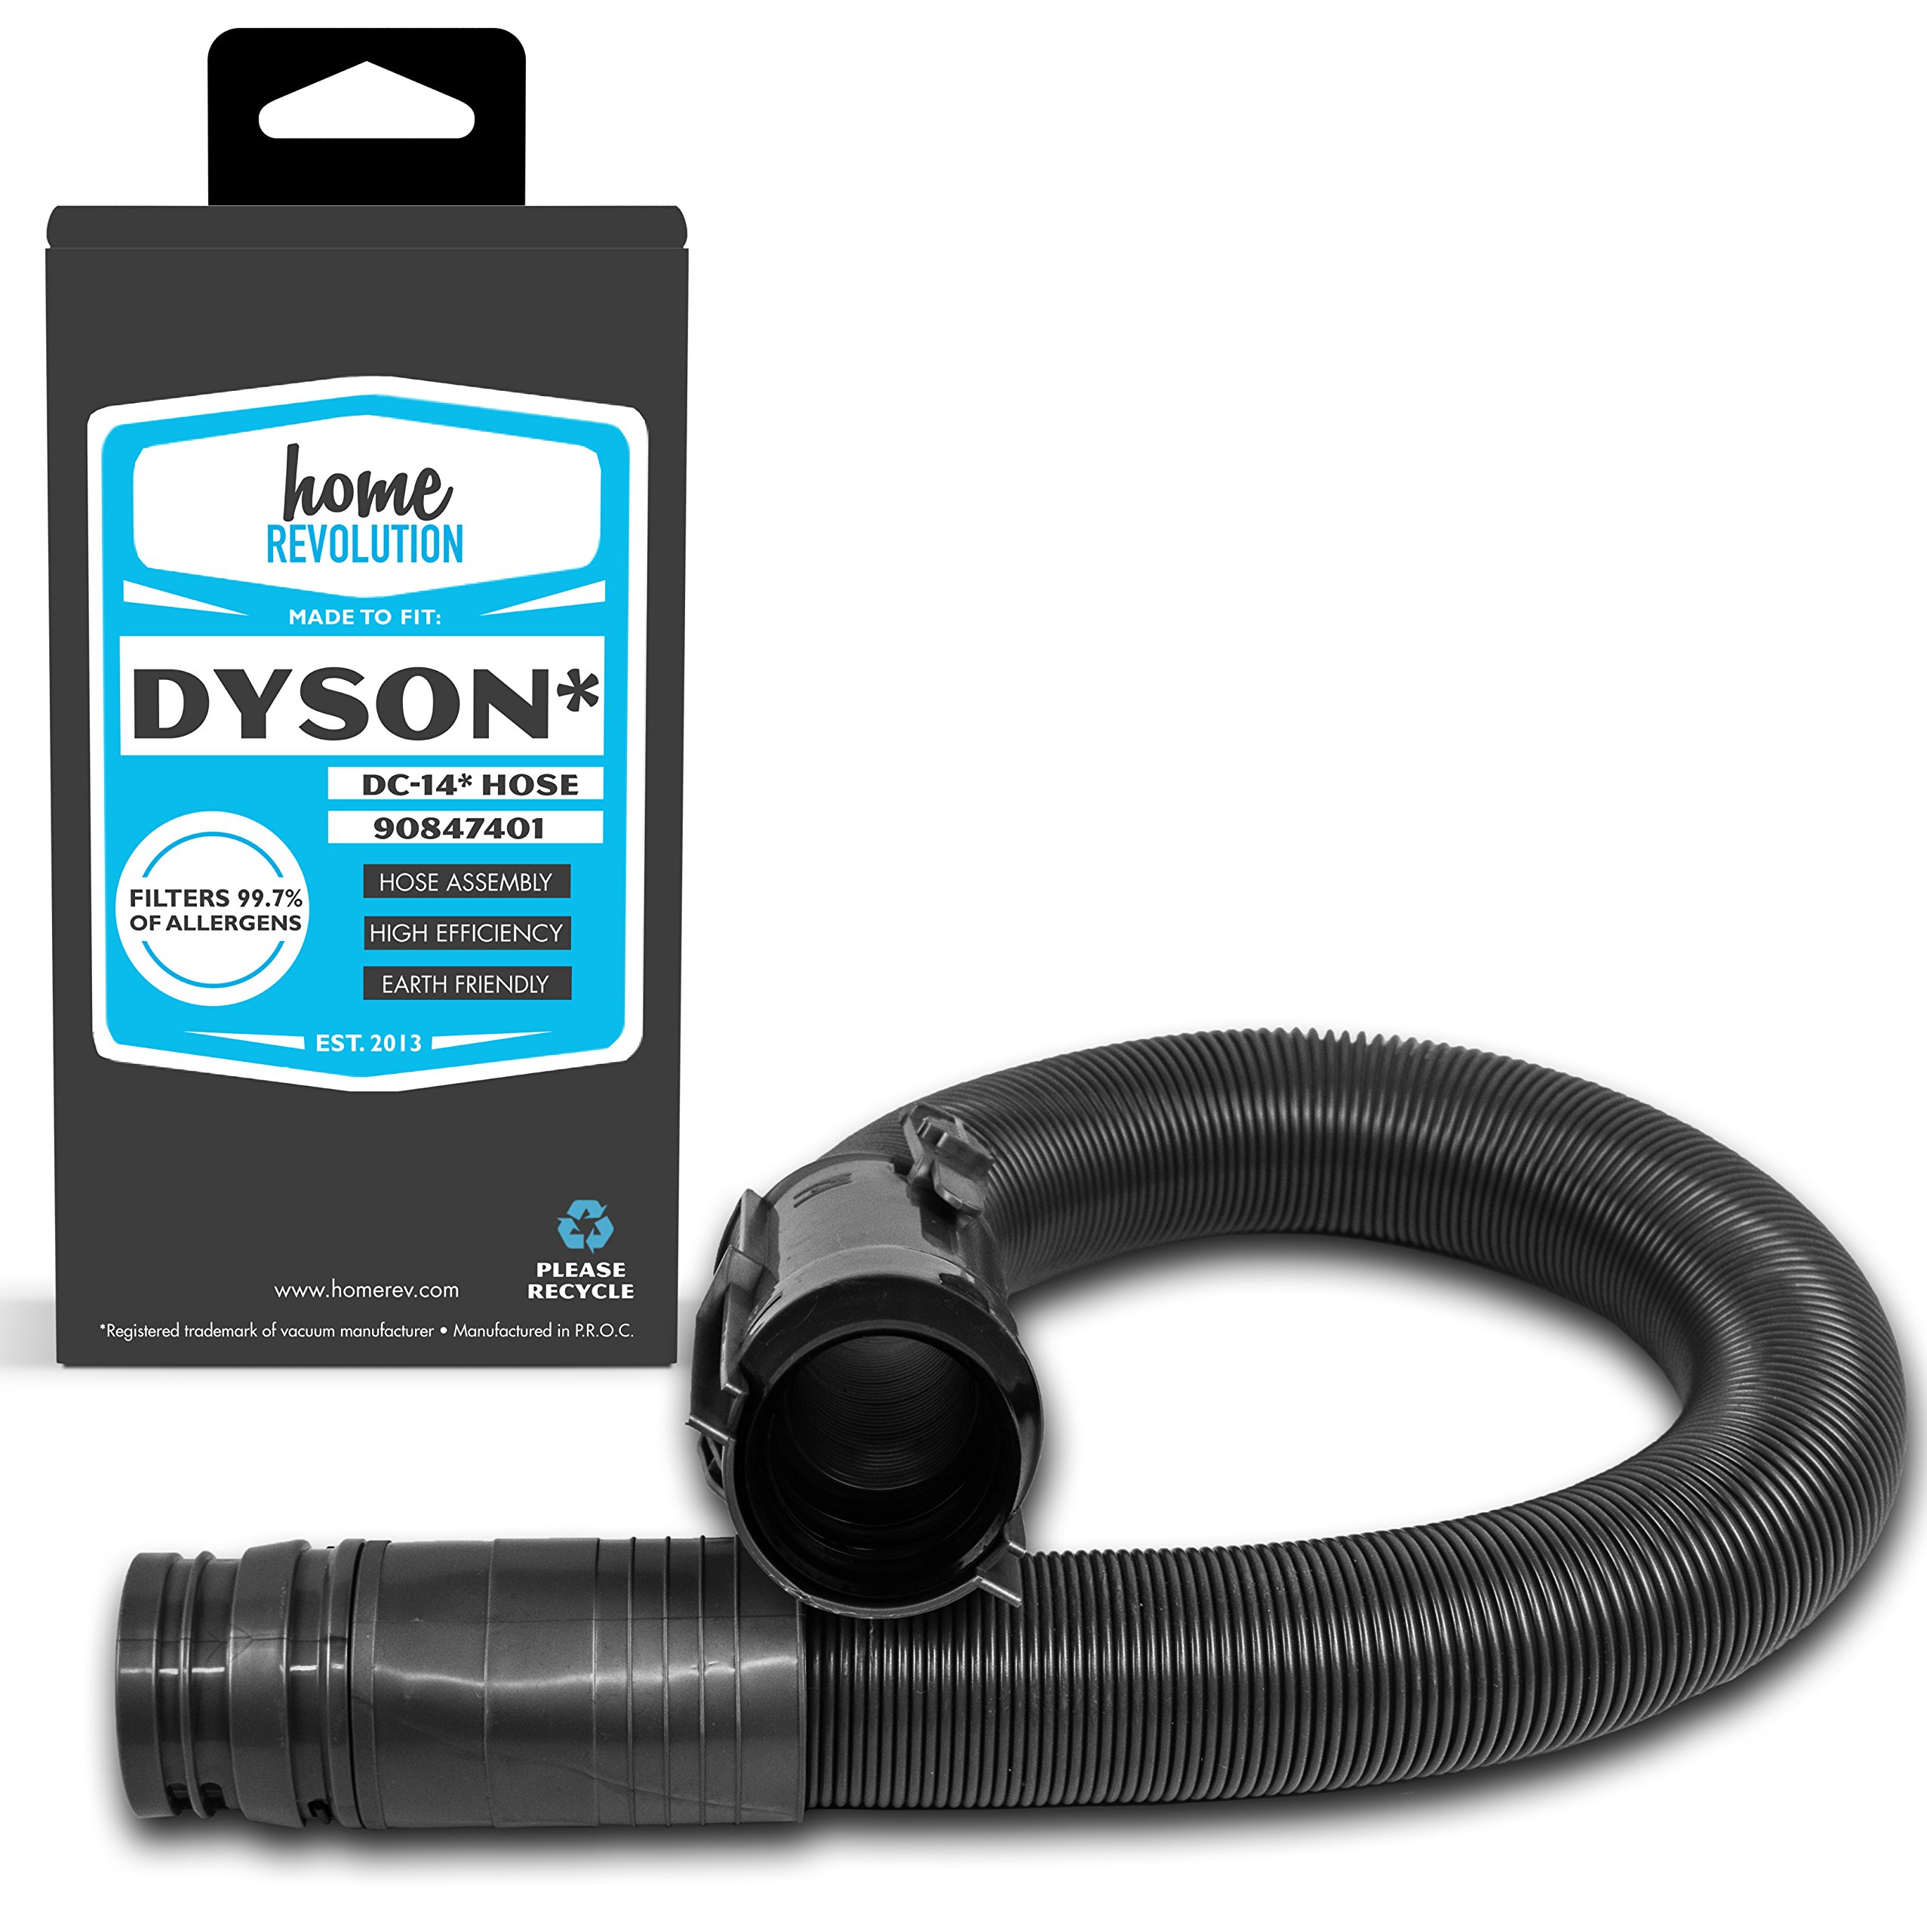 Home Revolution Replacement Vacuum Hose, Fits Dyson DC14 All-Floors Bagless Upright, Animal Cyclone Upright Vacuums and Part 908474-01 and 908474-37